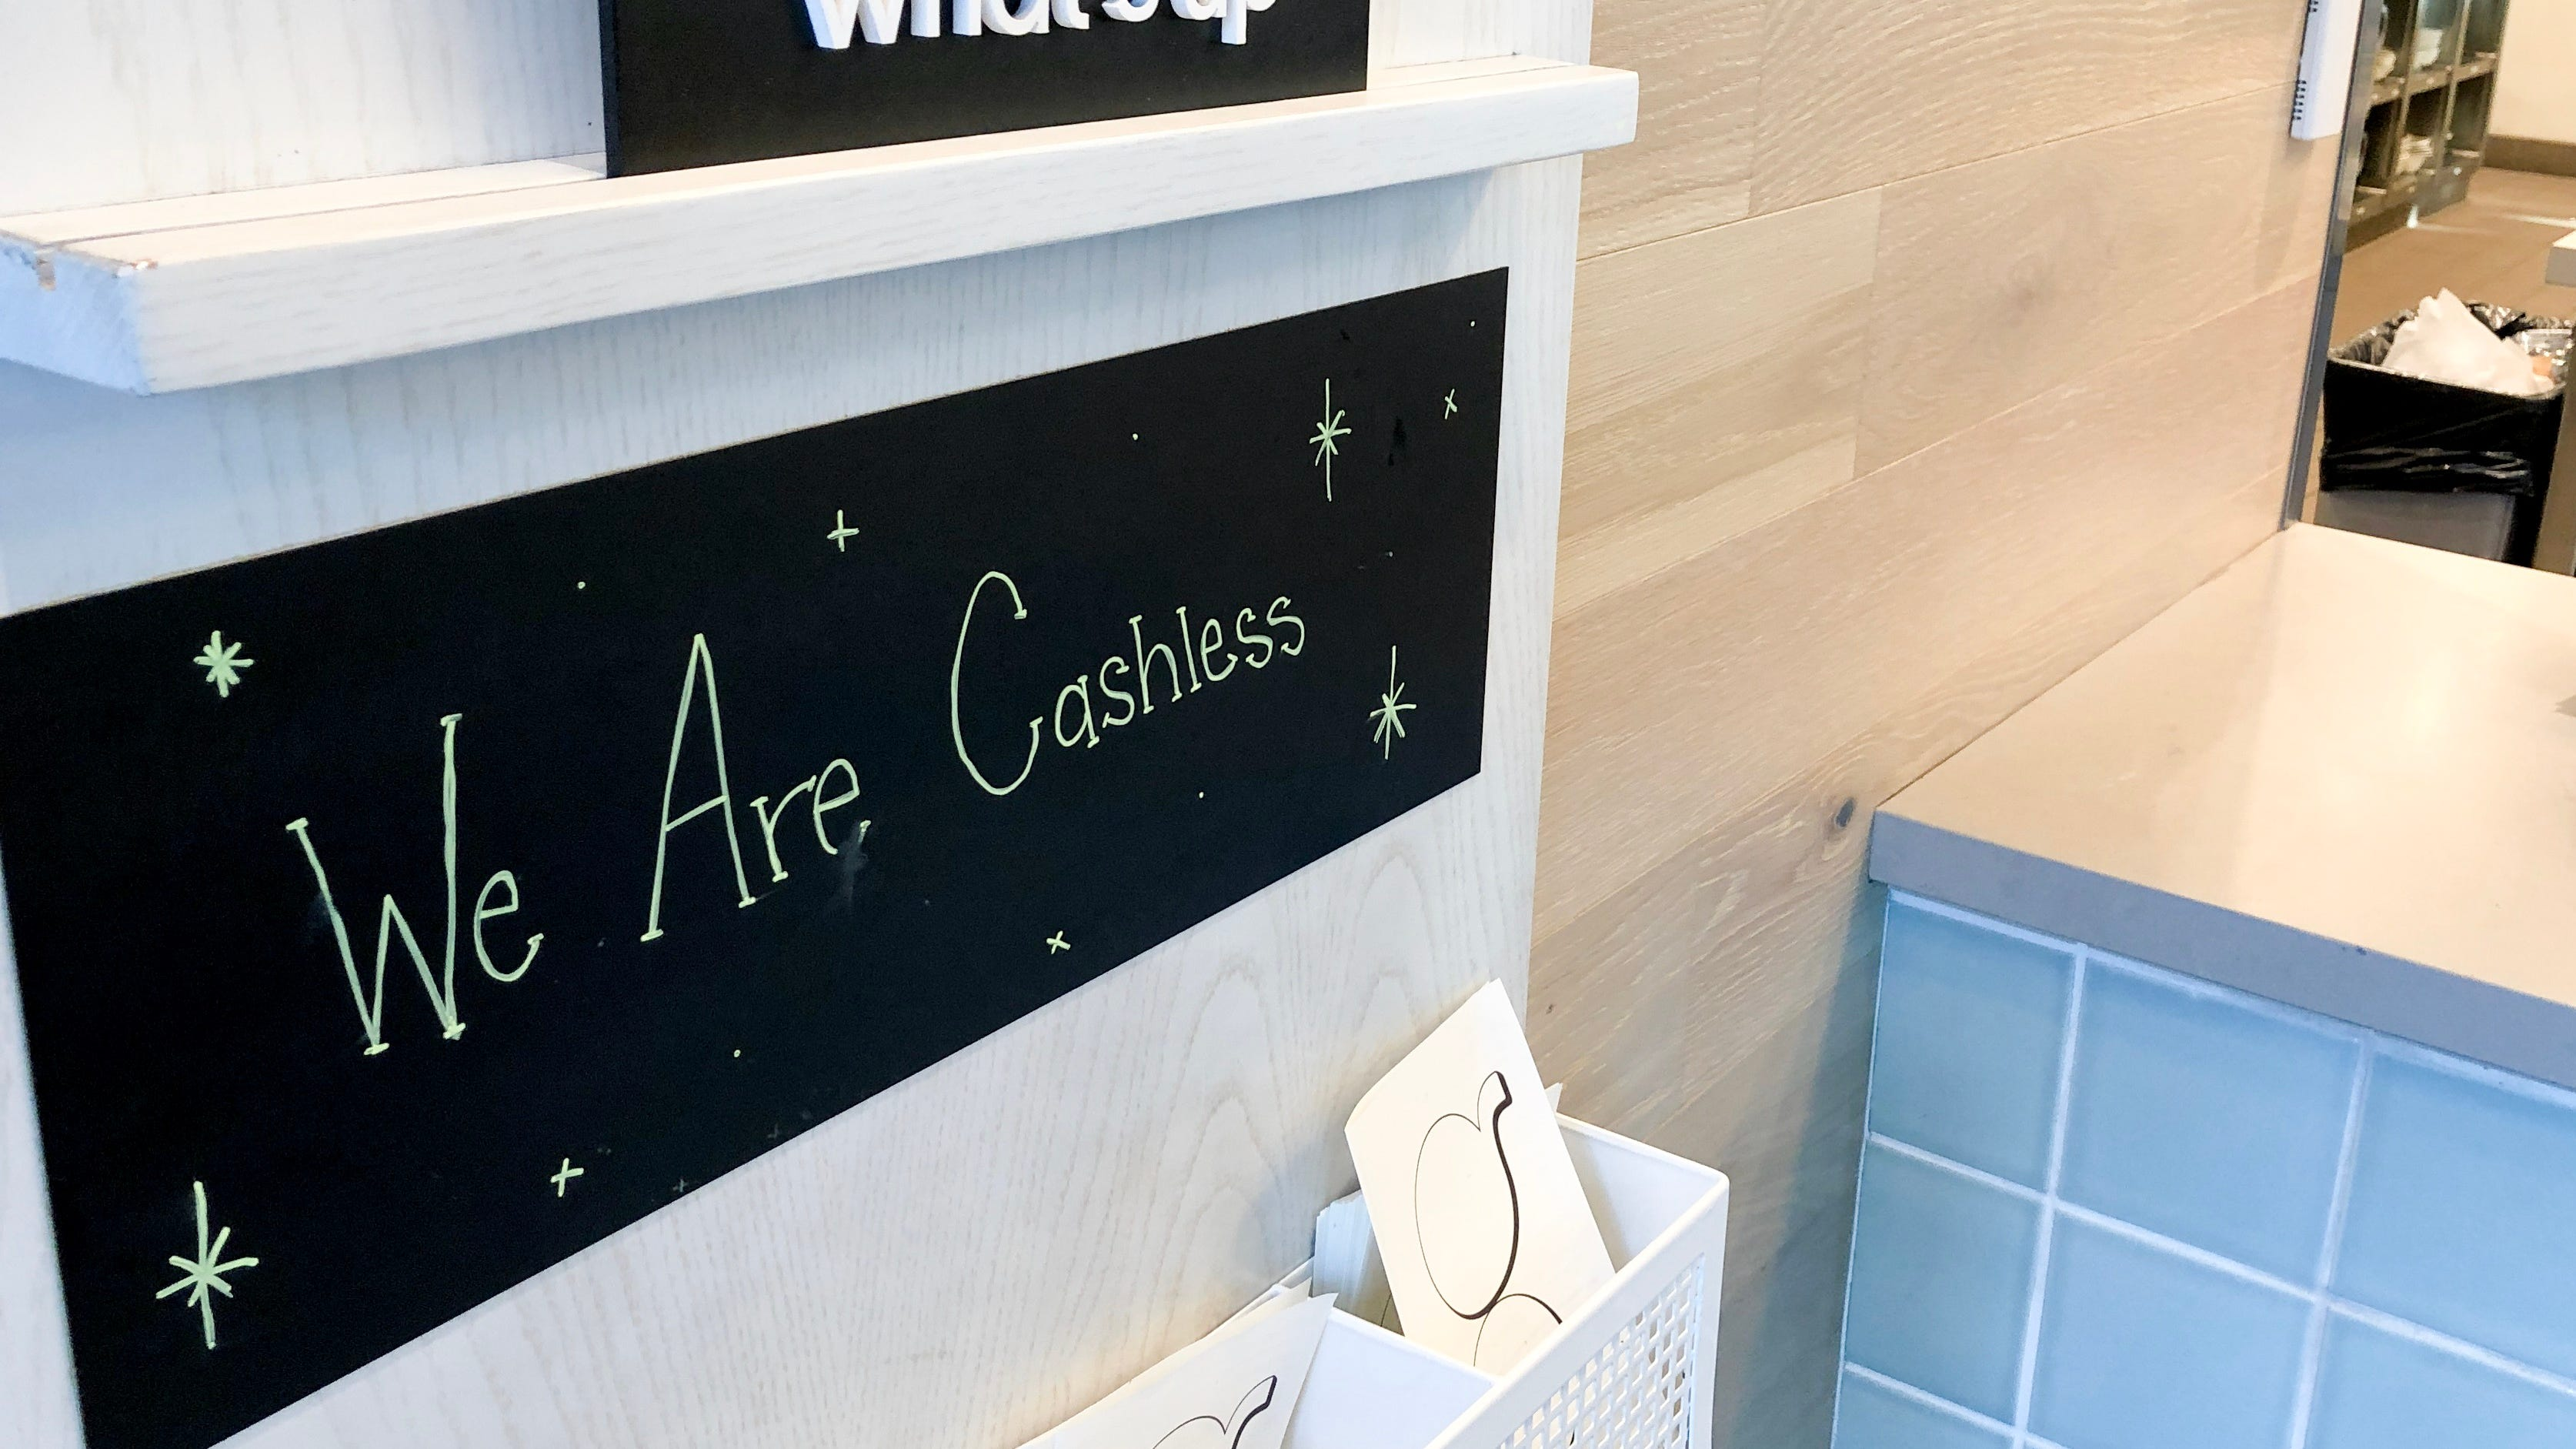 Don't ditch your cash yet, but we are going cashless. Really.